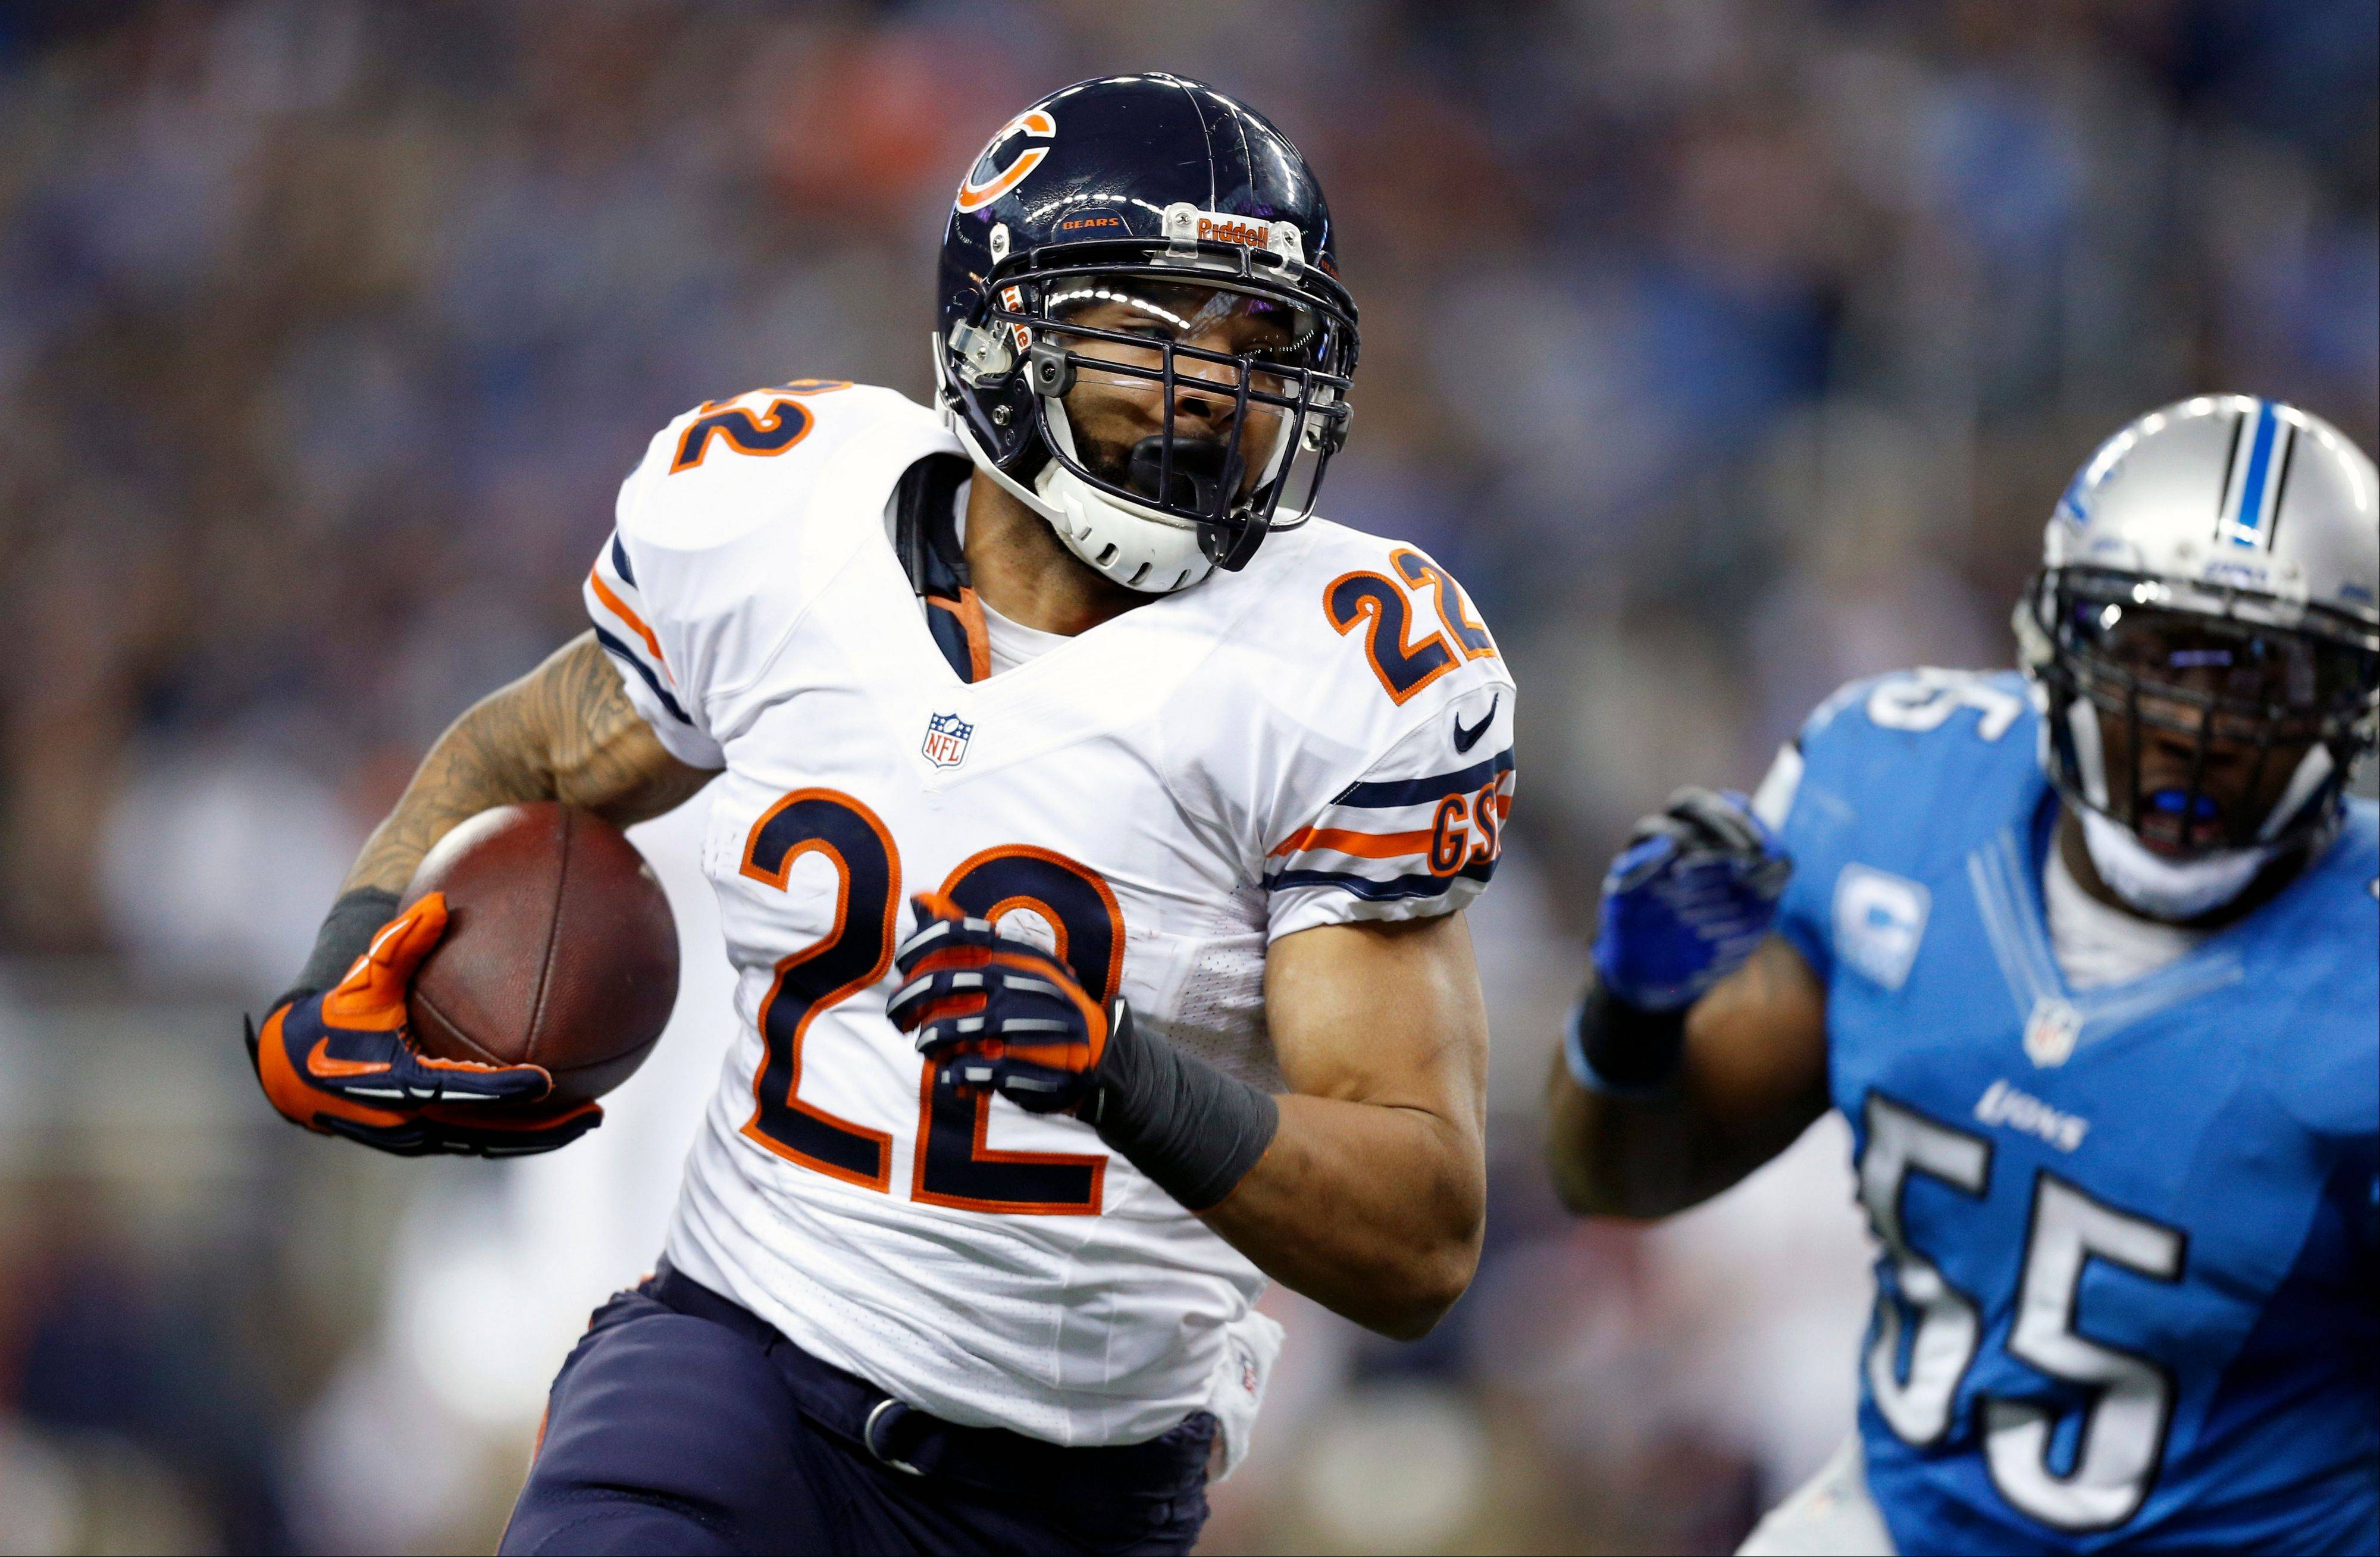 Chicago Bears running back Matt Forte (22) runs during the second quarter of an NFL football game against the Detroit Lions at Ford Field in Detroit, Sunday, Dec. 30, 2012.